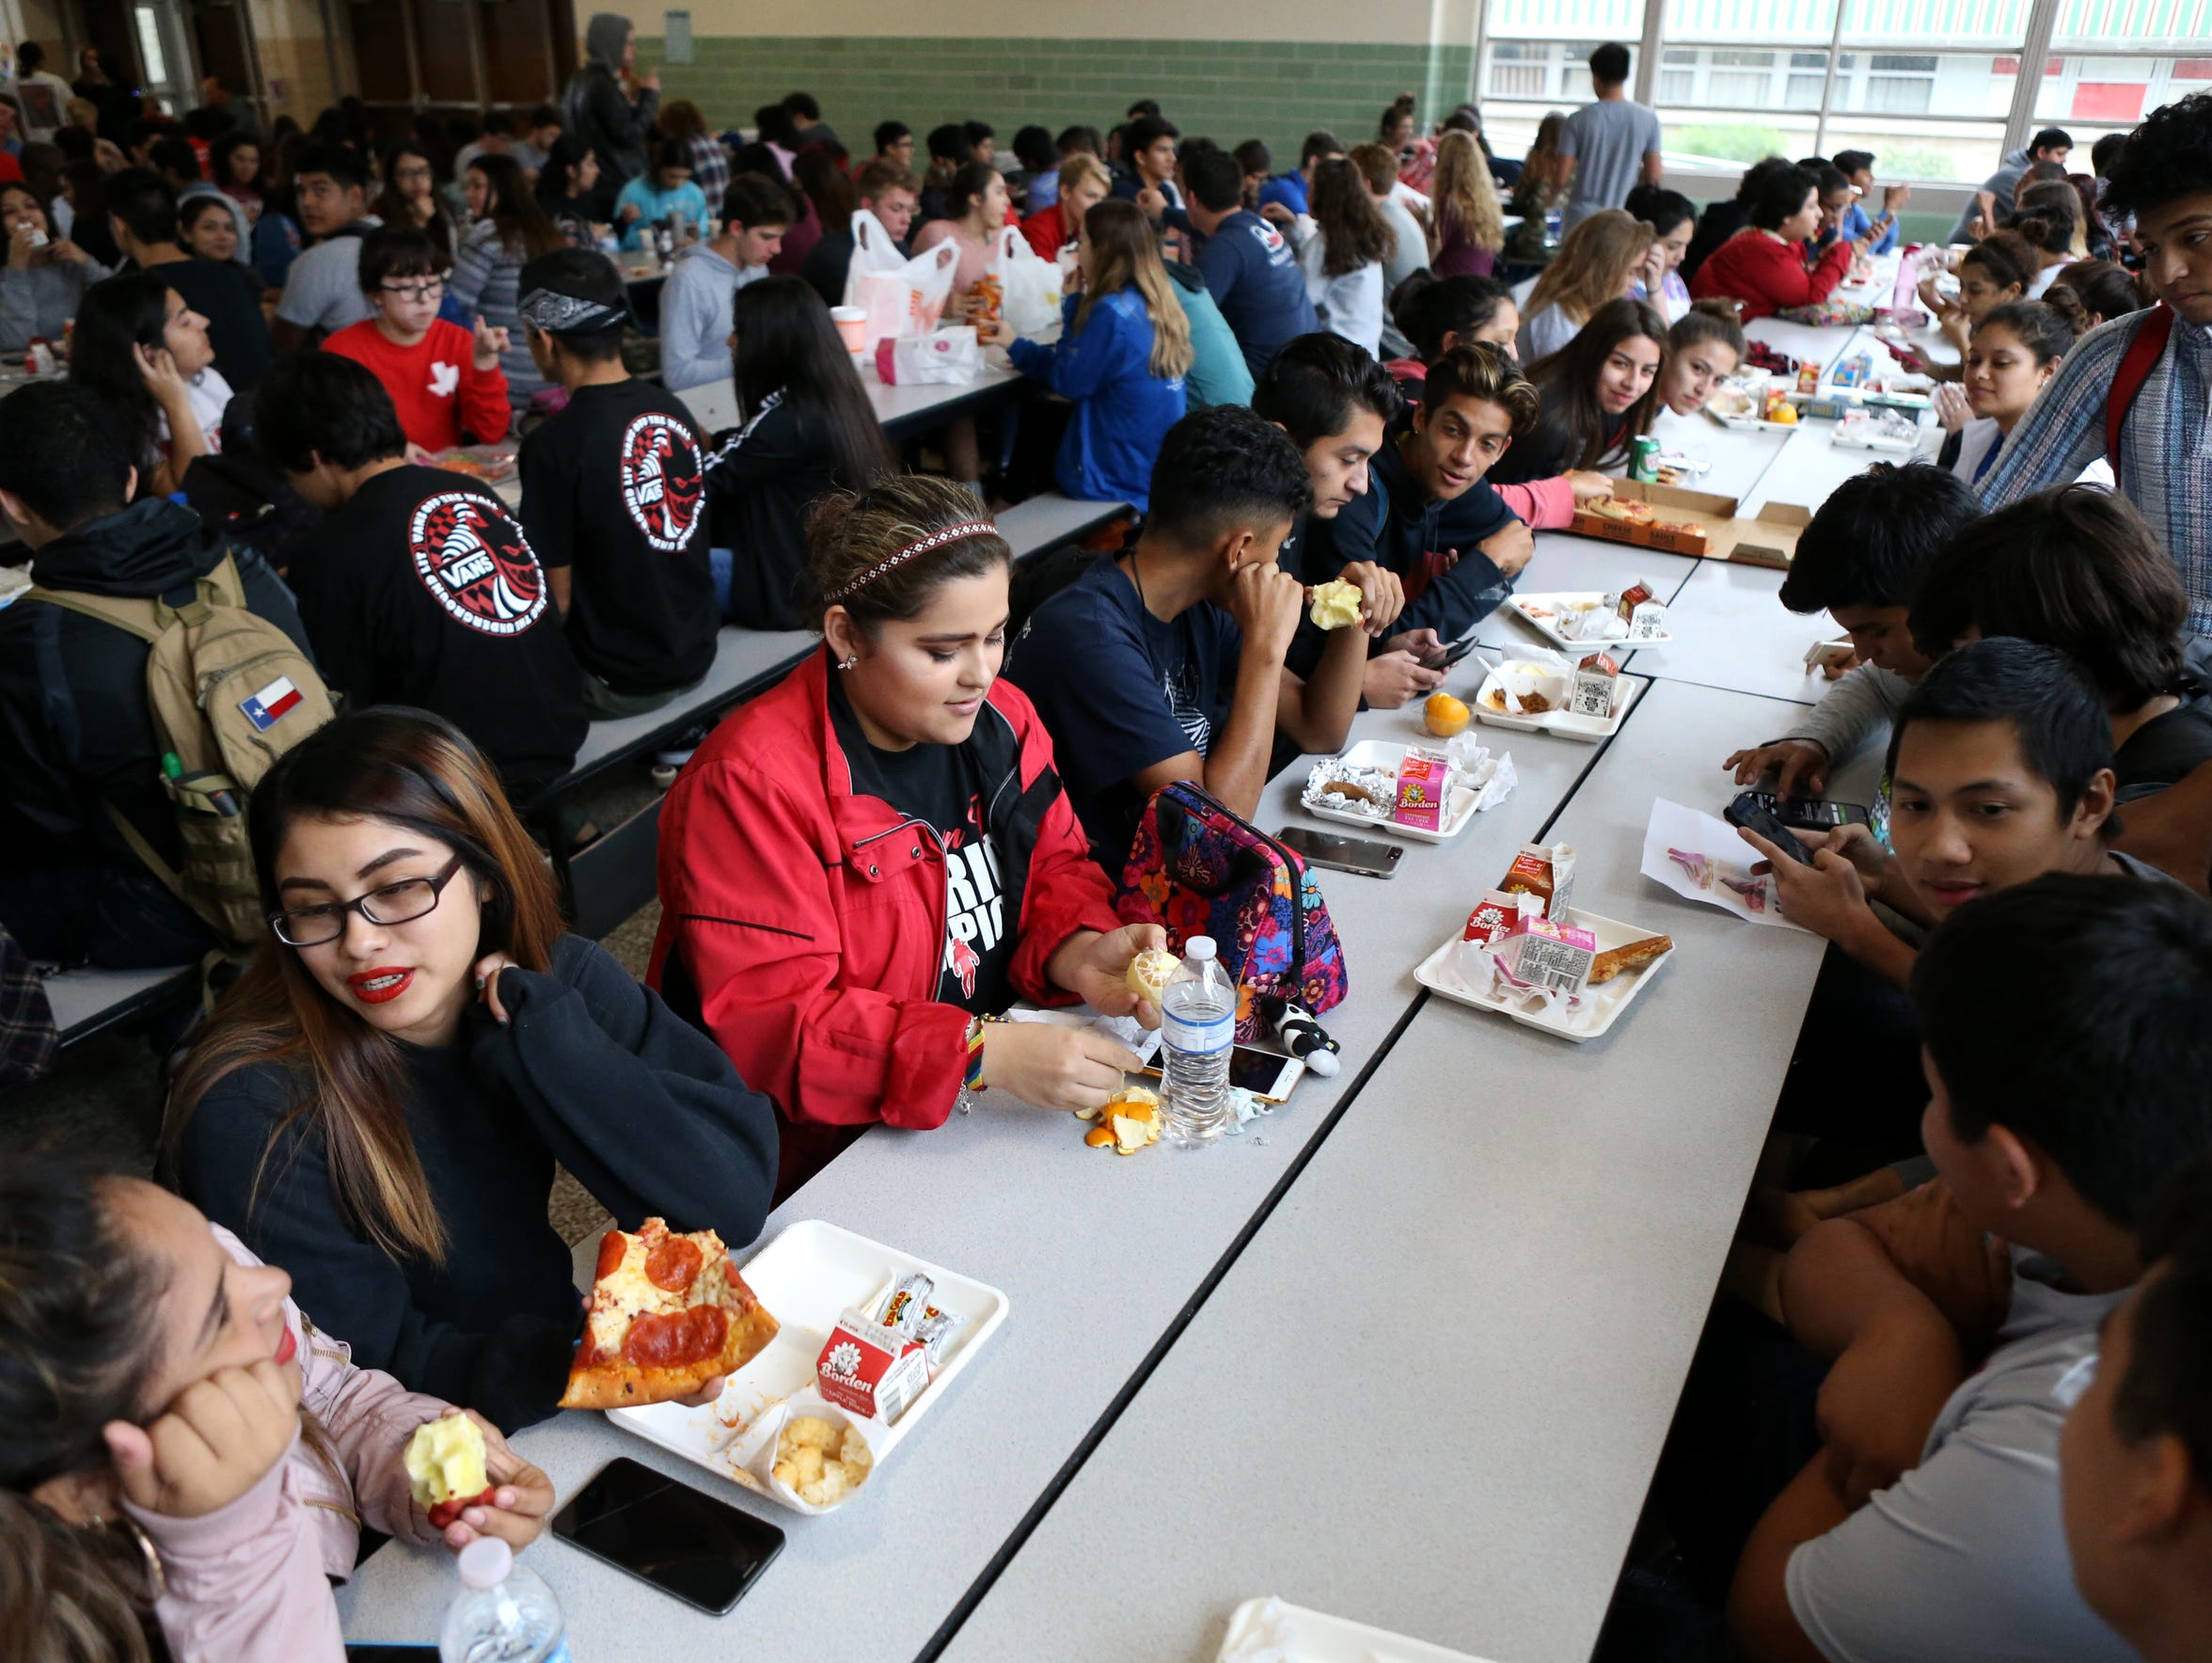 Claudia Jimenez, 19, eats lunch with her small group of friends on November 8, 2017. Her goal of graduating and going to college and making it against all odds pushes her every day to get up. She has an opportunity her older and younger sister were not able to get, she said.